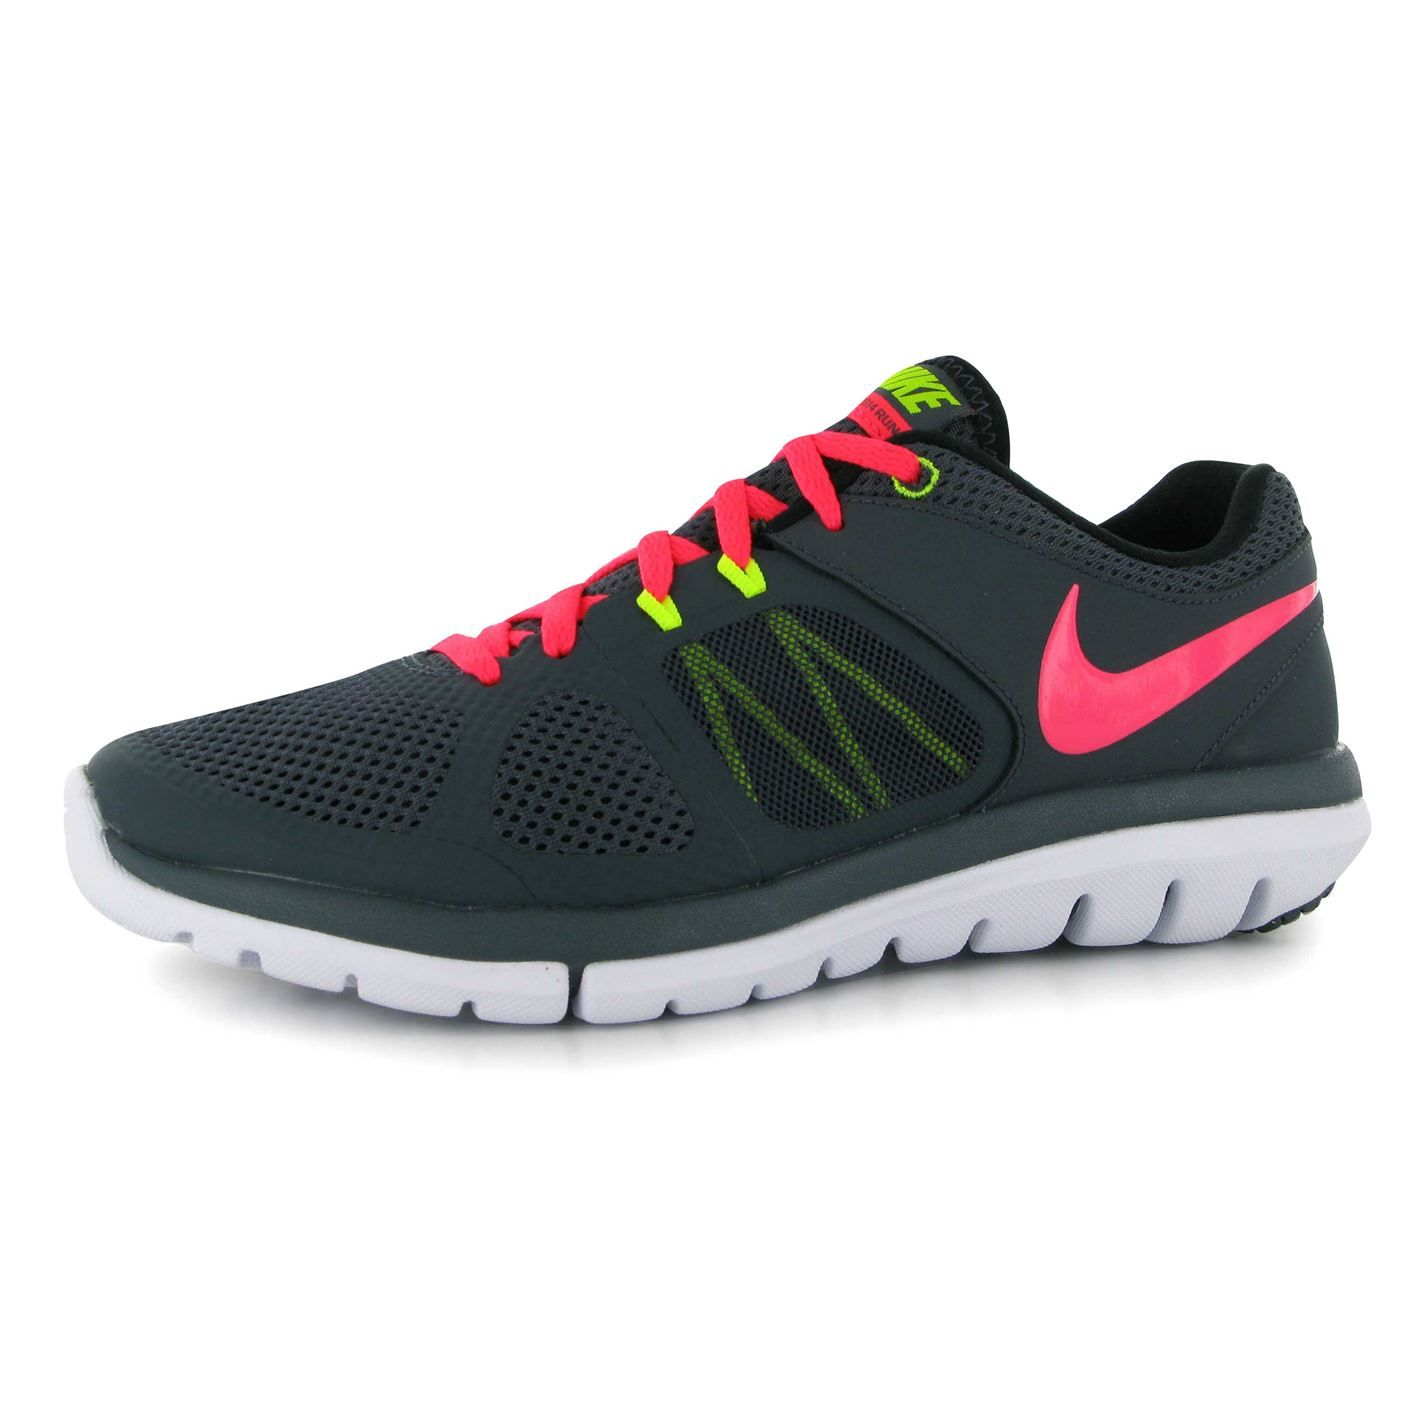 Nike Downshifter VI Ladies Trainers now £32.99